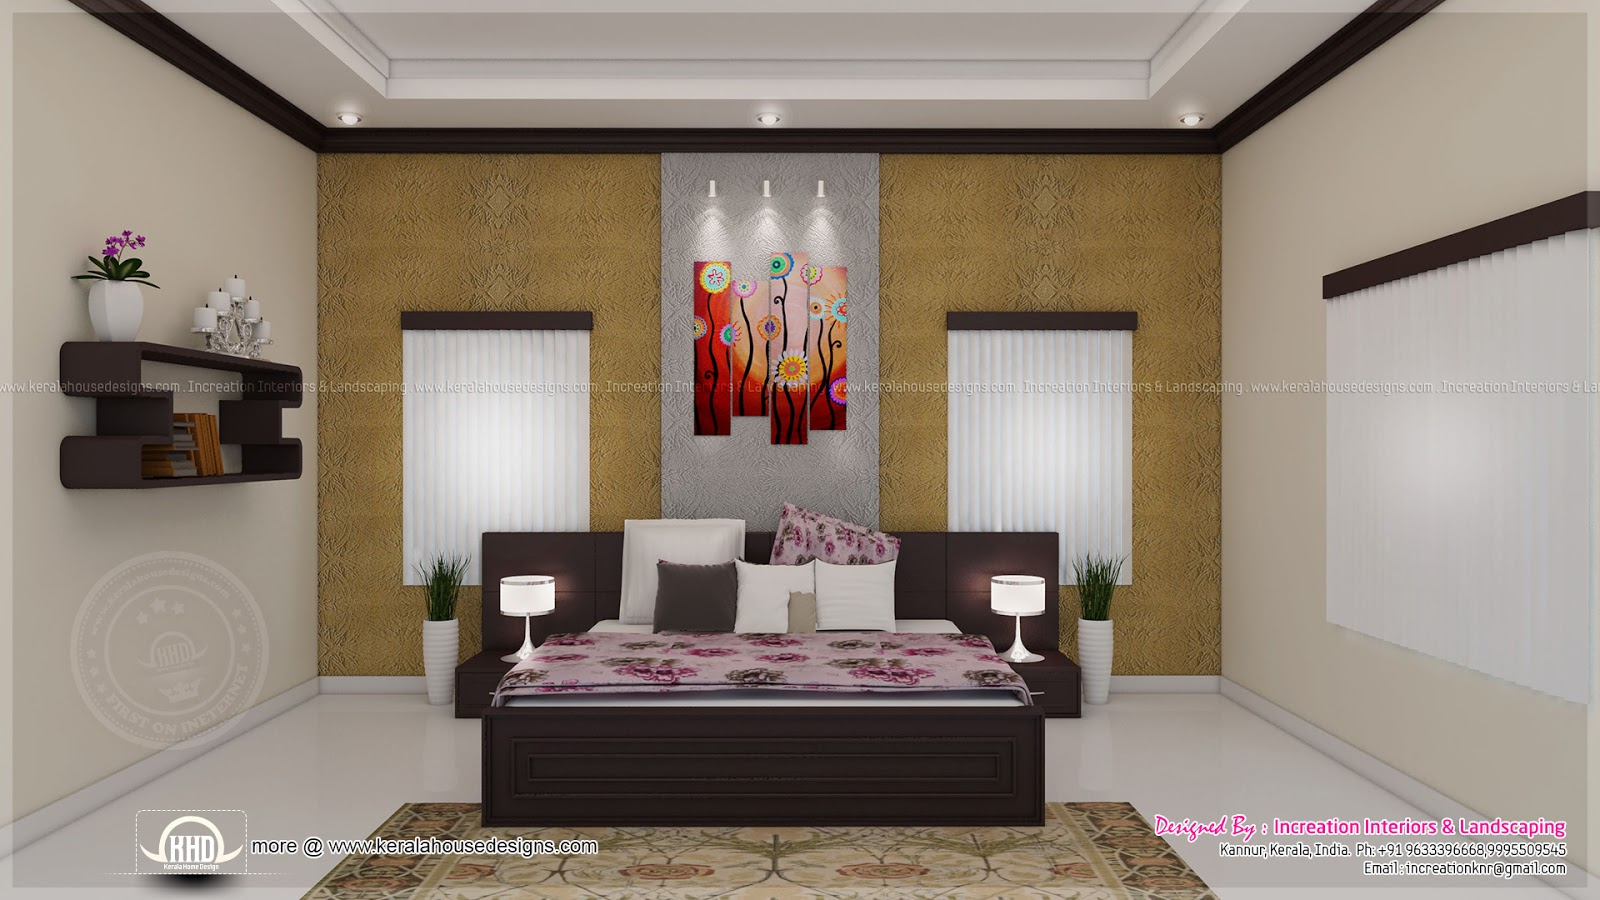 House interior ideas in 3d rendering kerala home design for House interior design photos